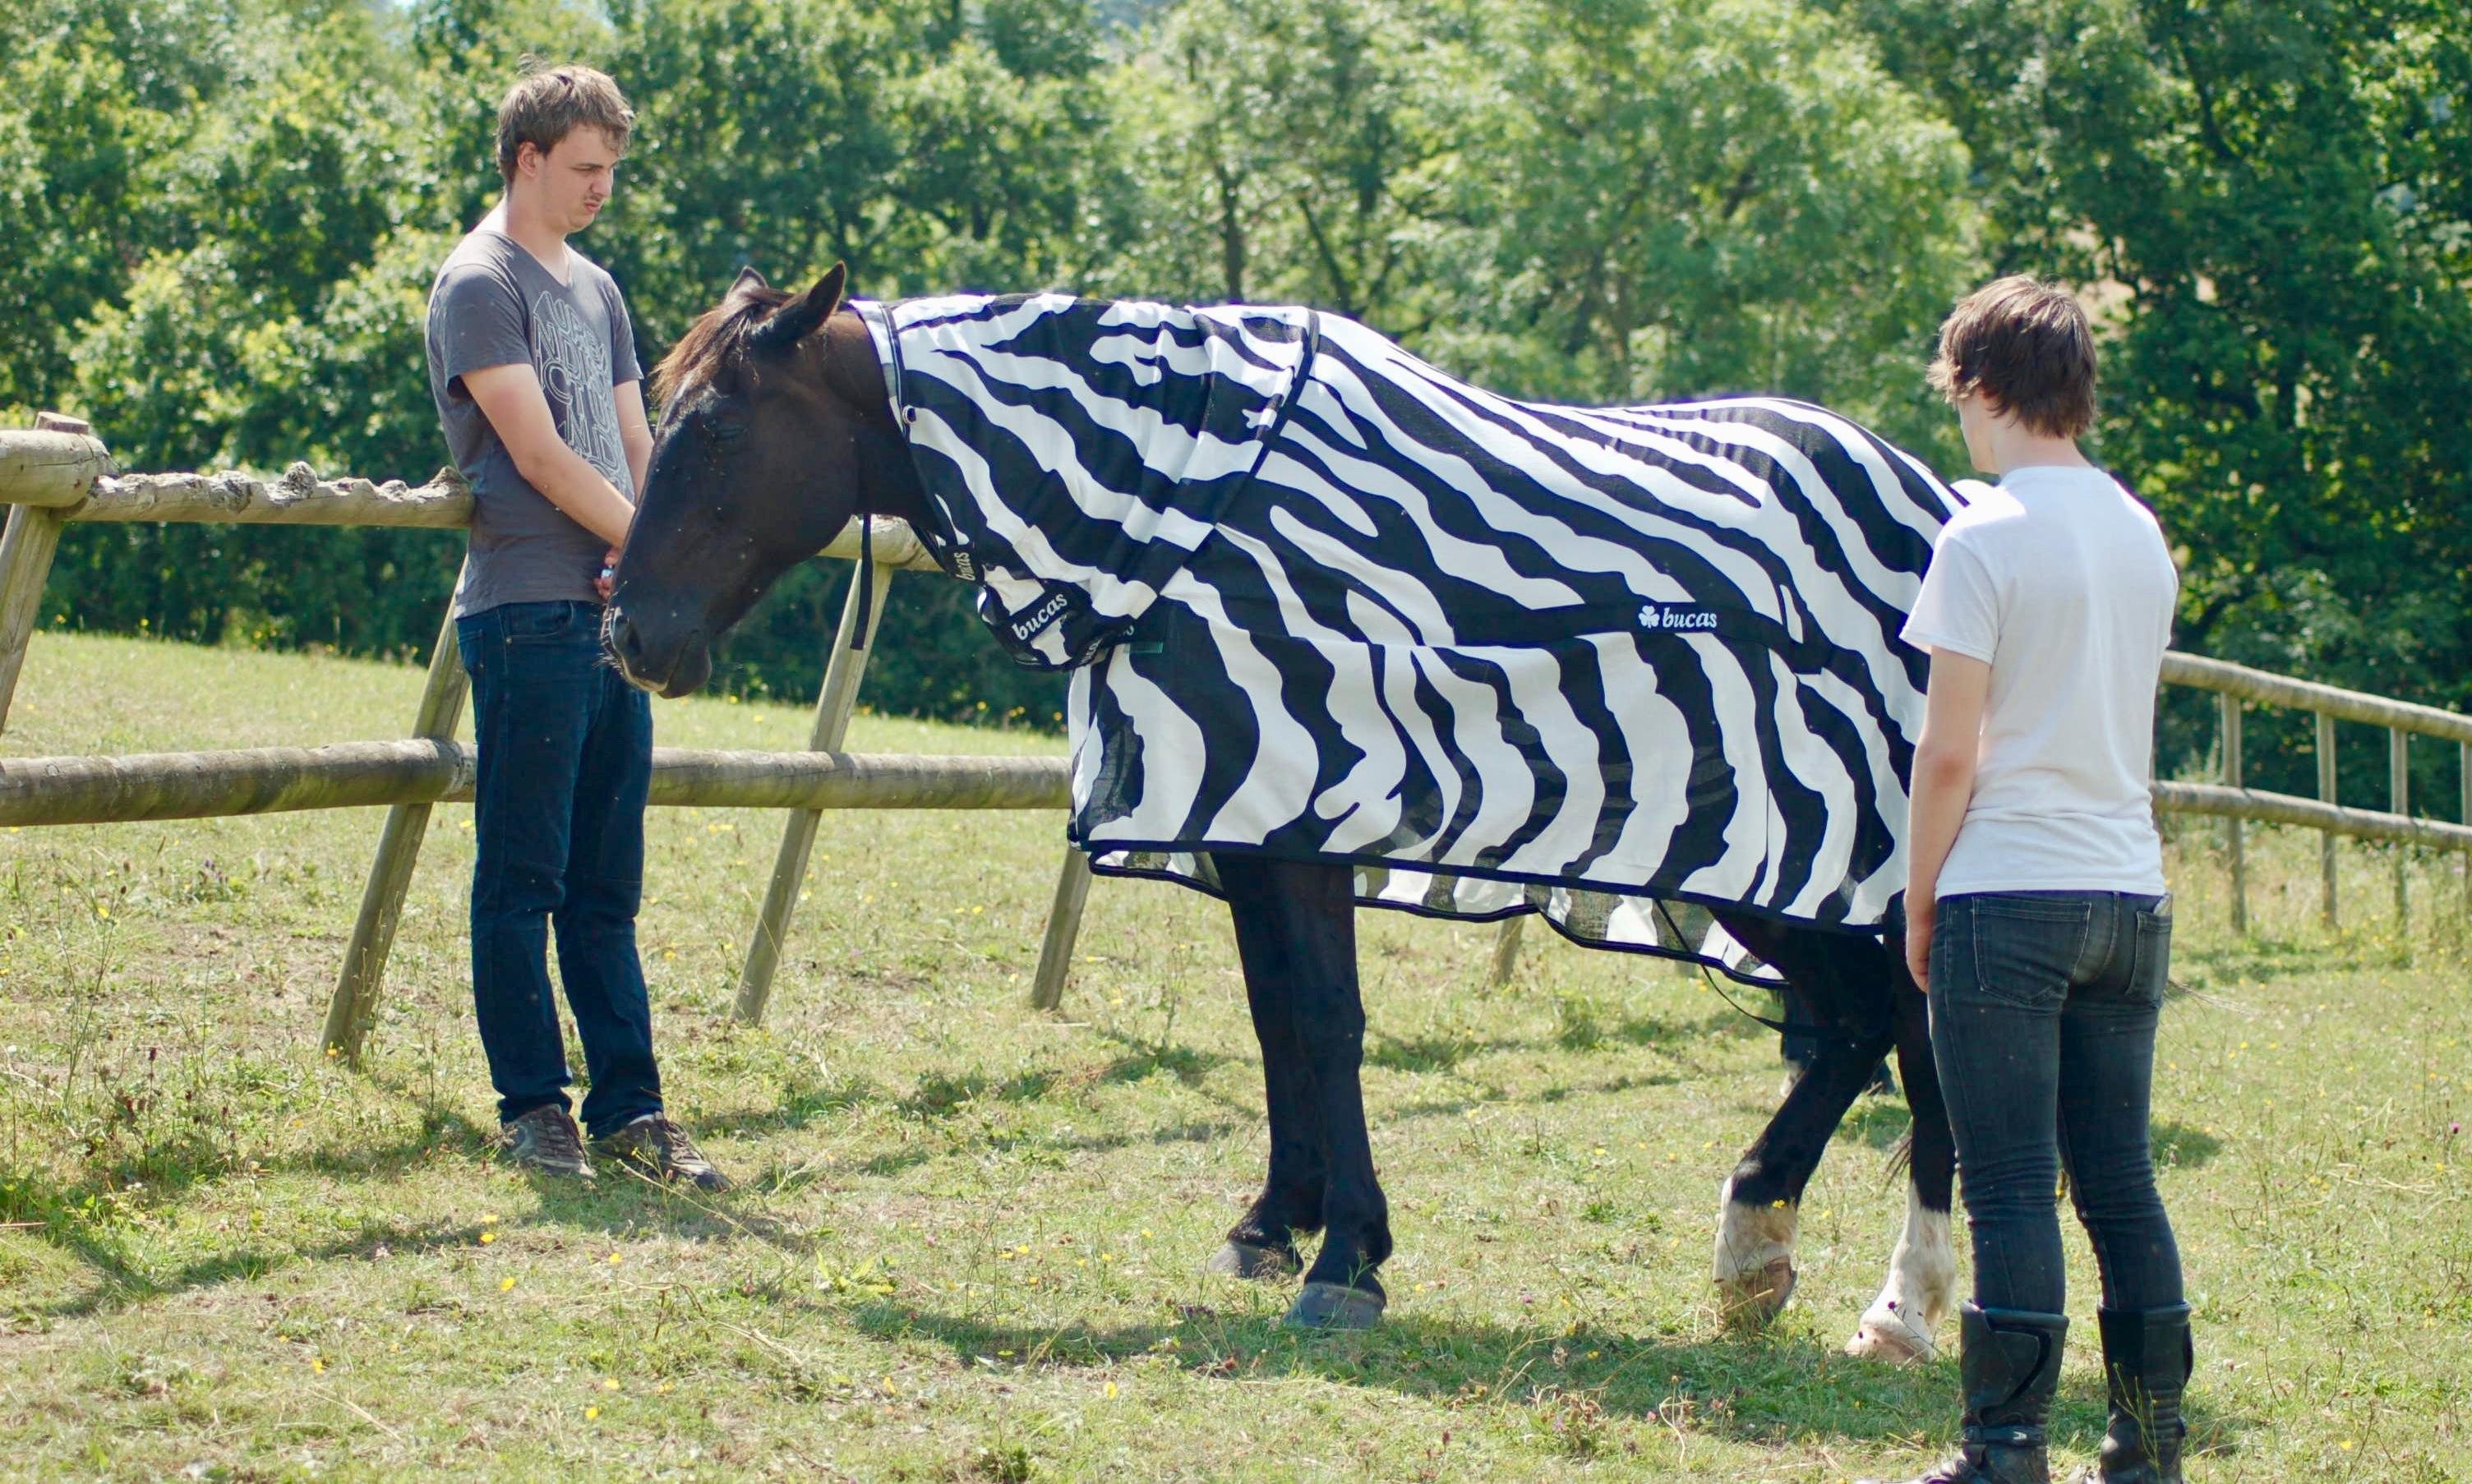 Why the zebra got its stripes: to deter flies from landing on it